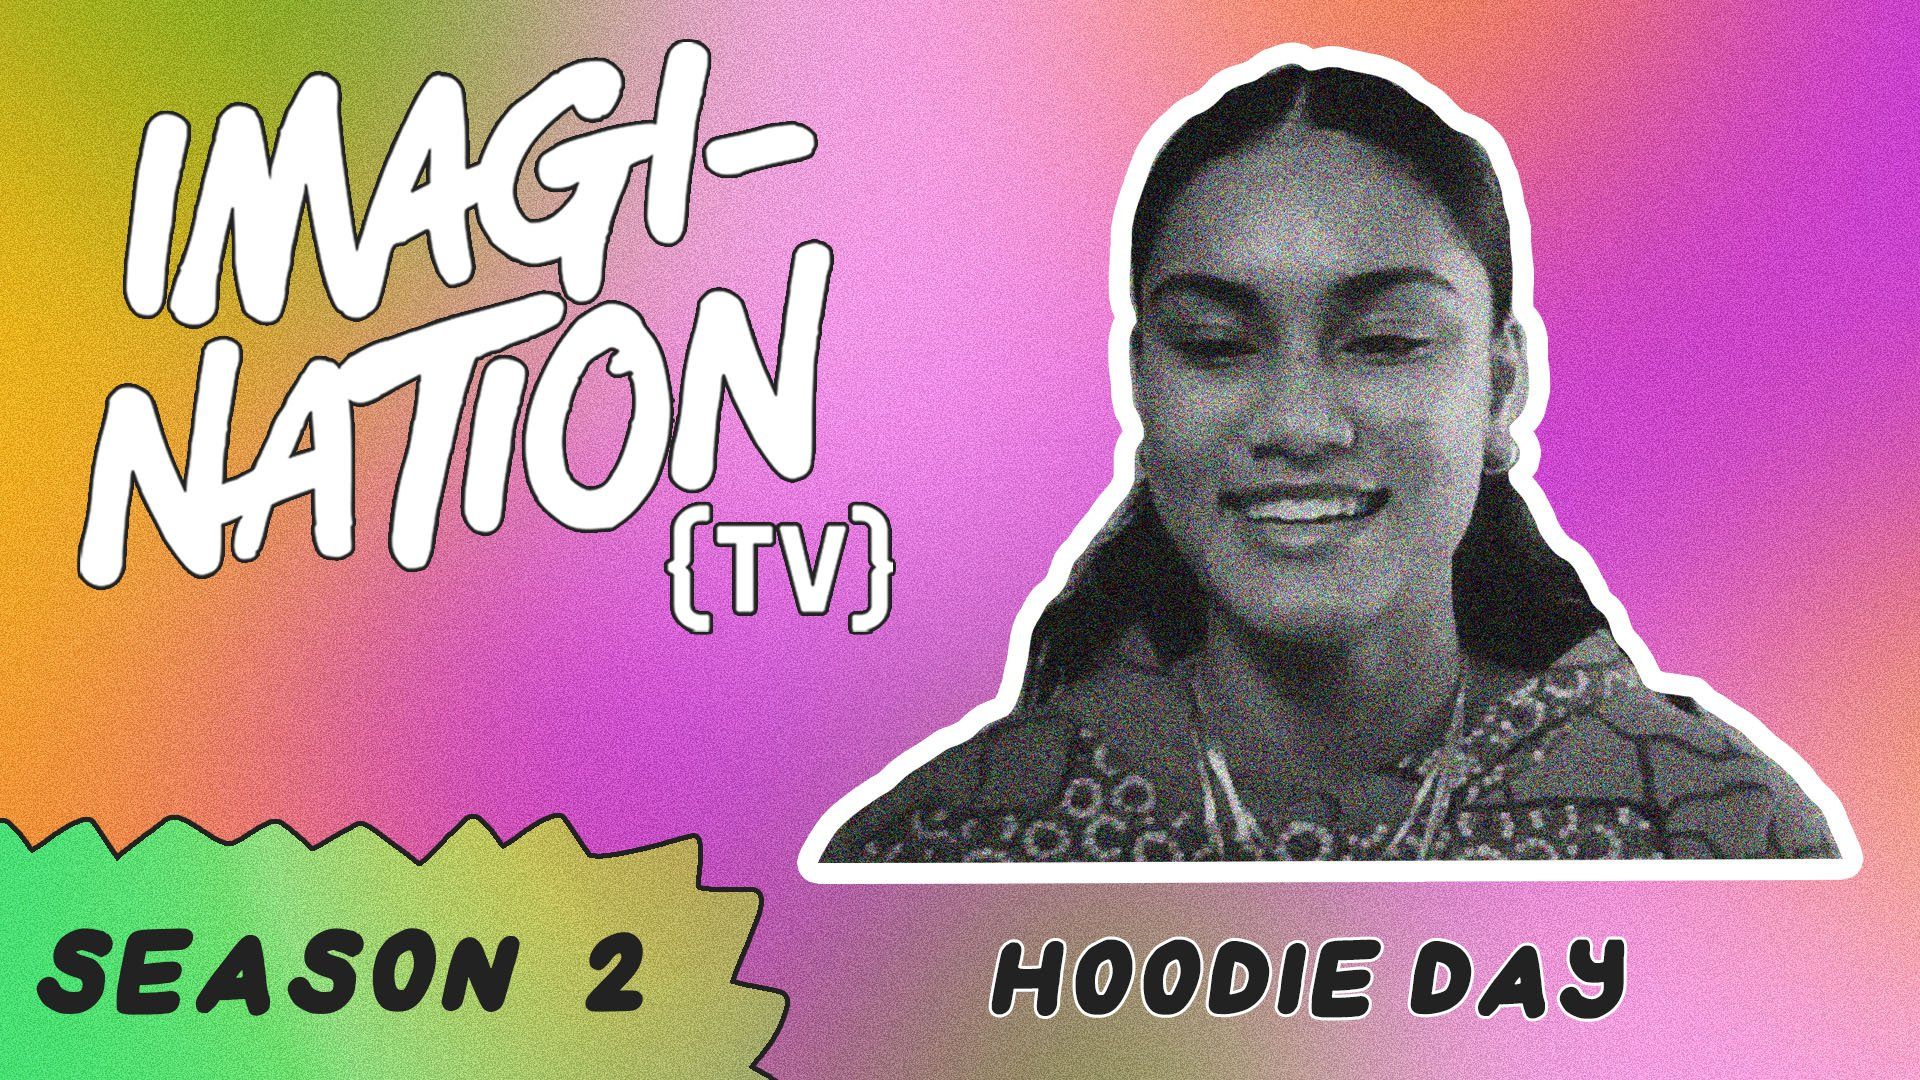 Ane Faaui host Hoodie Day Special   IMAGI-NATION {TV}